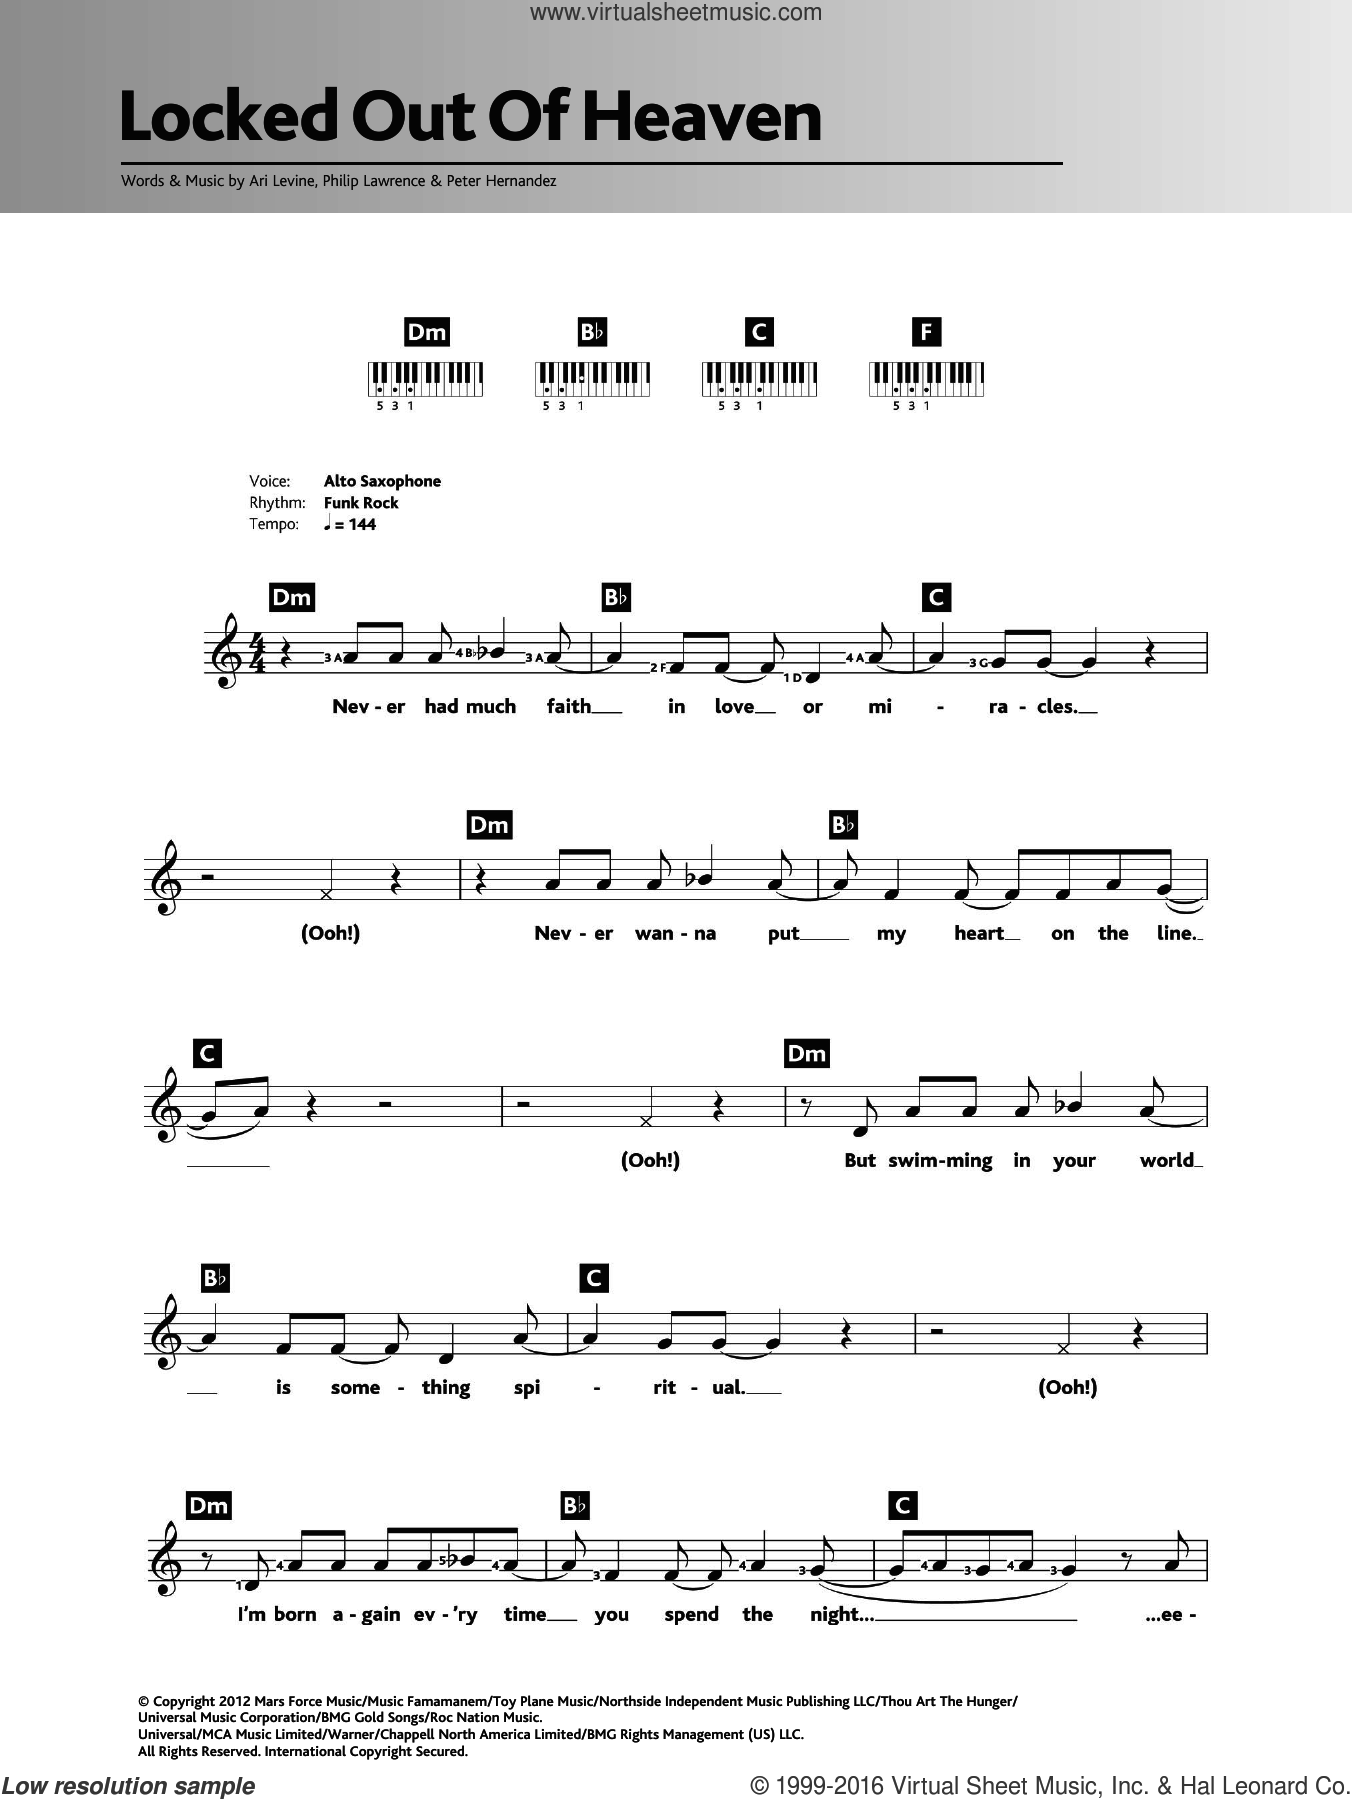 Locked Out Of Heaven sheet music for piano solo (chords, lyrics, melody) by Bruno Mars, Ari Levine, Peter Hernandez and Philip Lawrence. Score Image Preview.